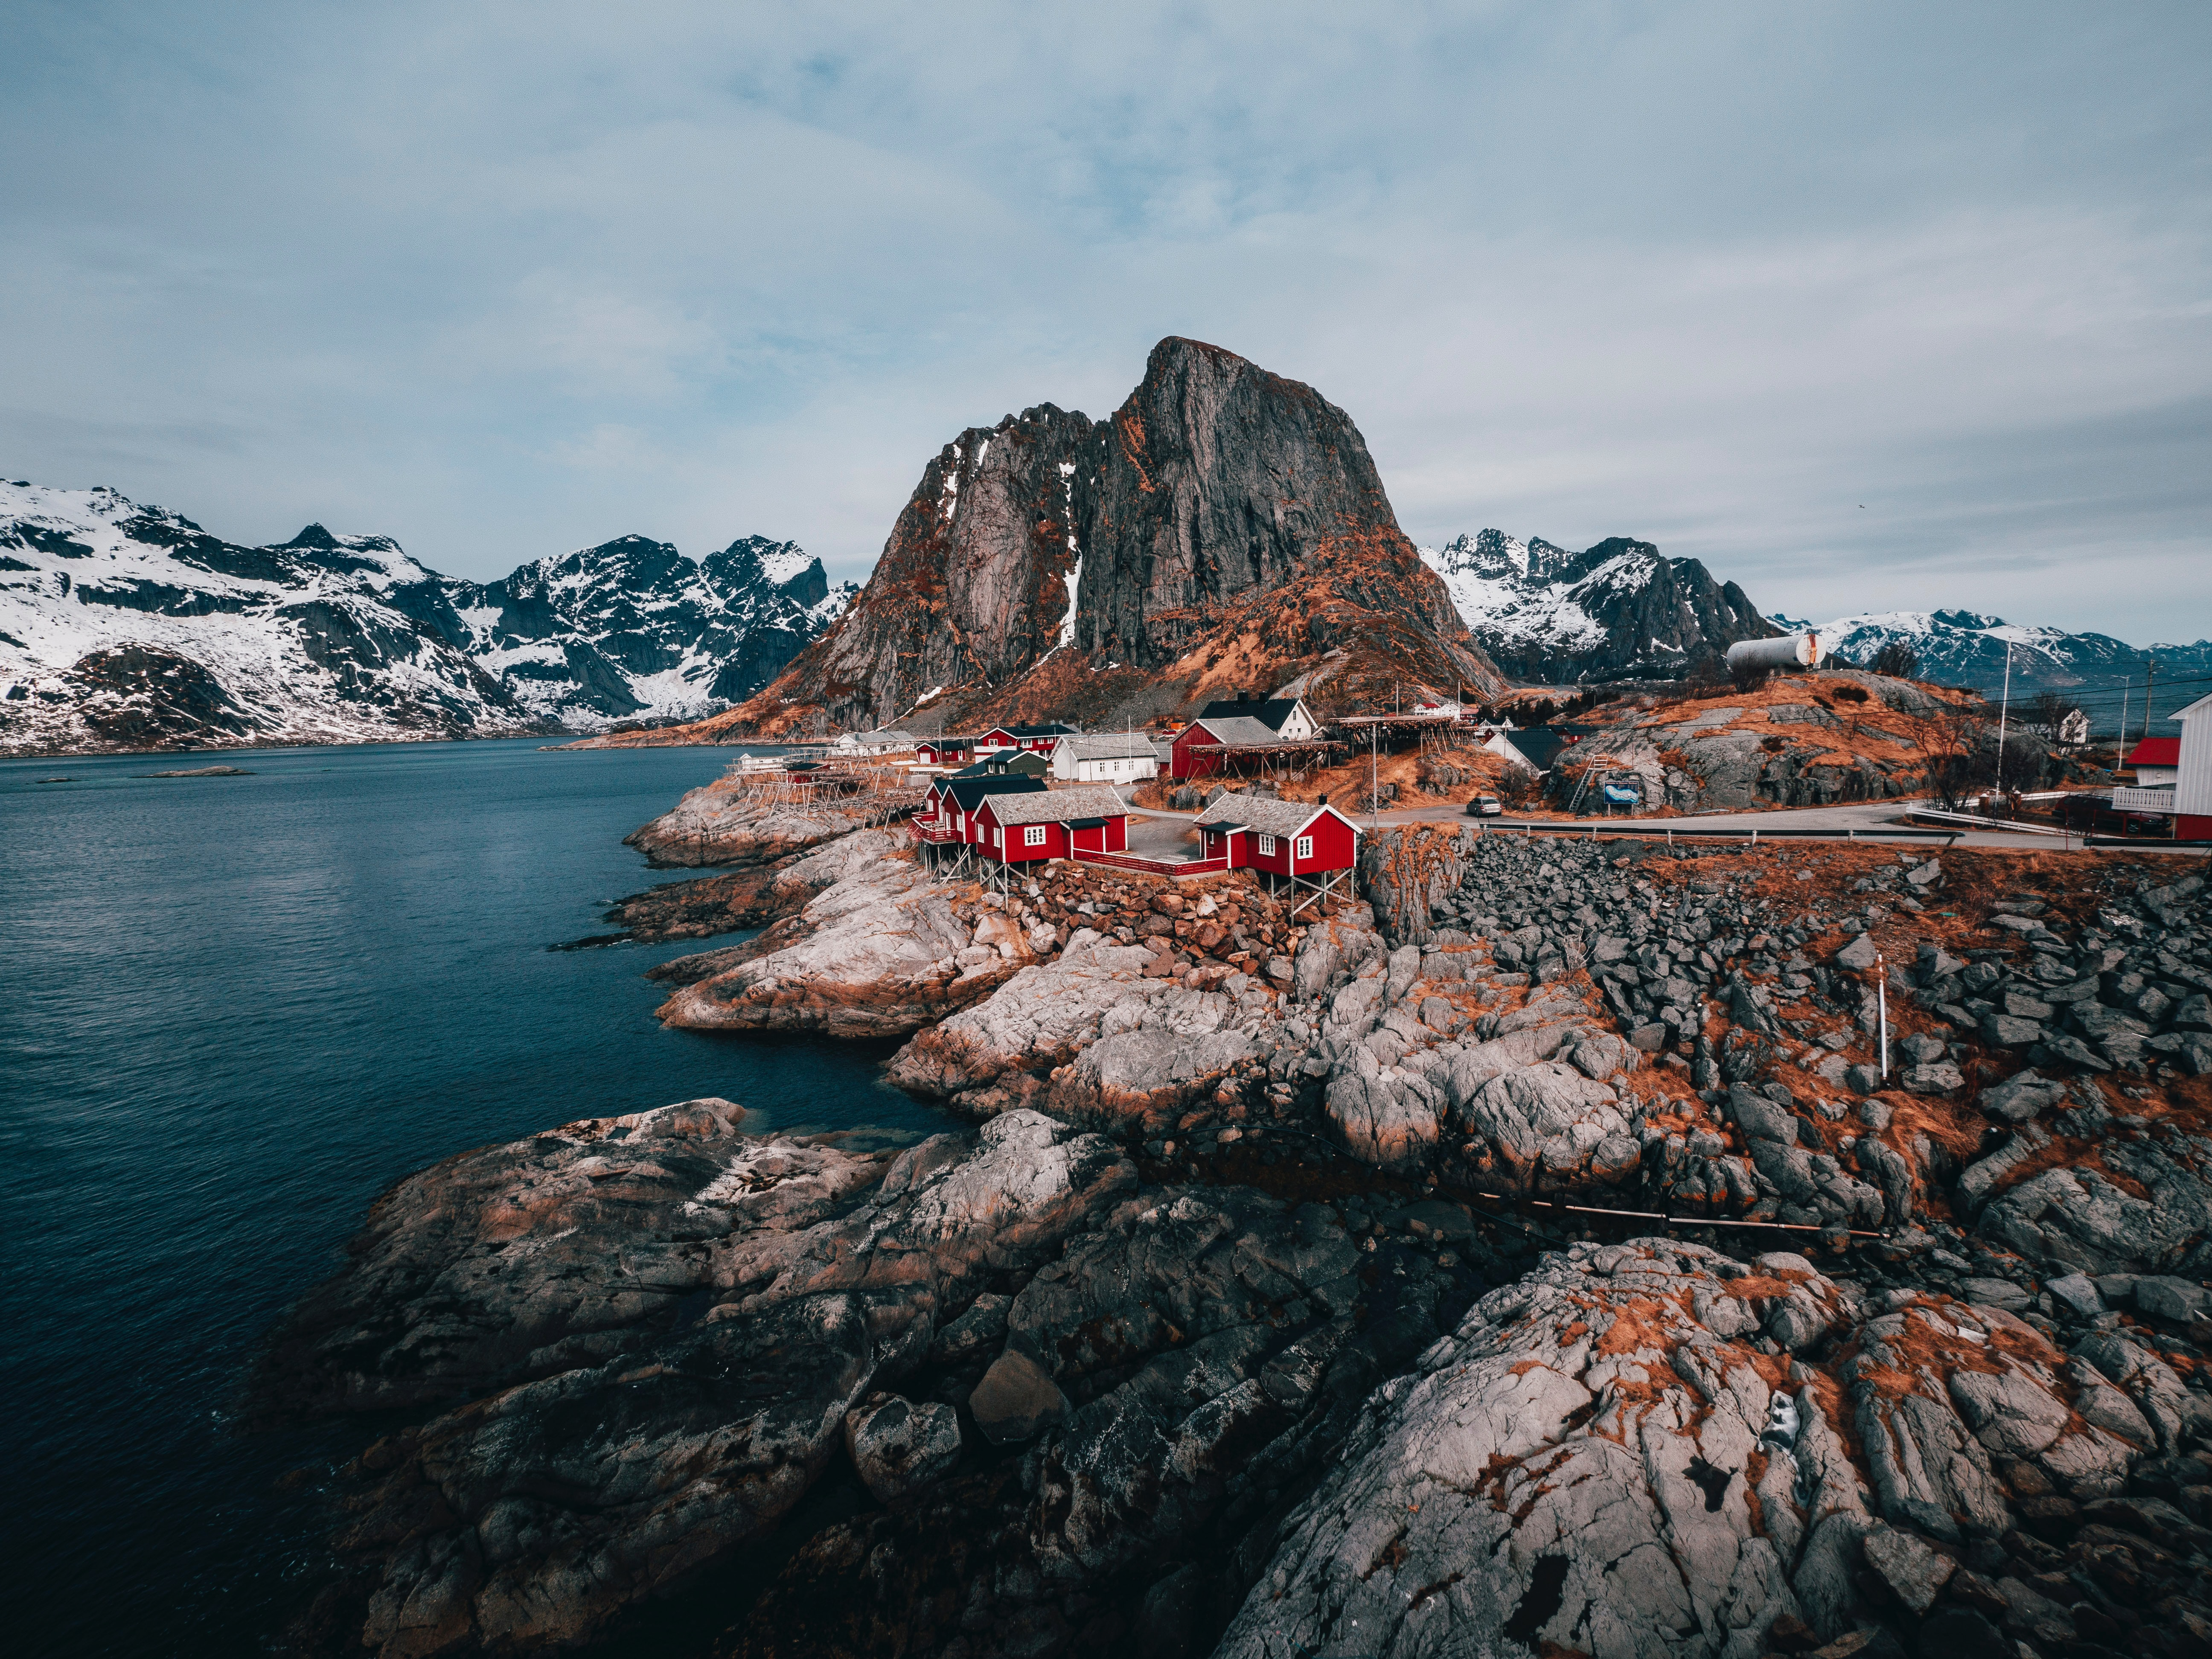 Norway's Natural Wonders: Mountains, Fjords, and Glaciers